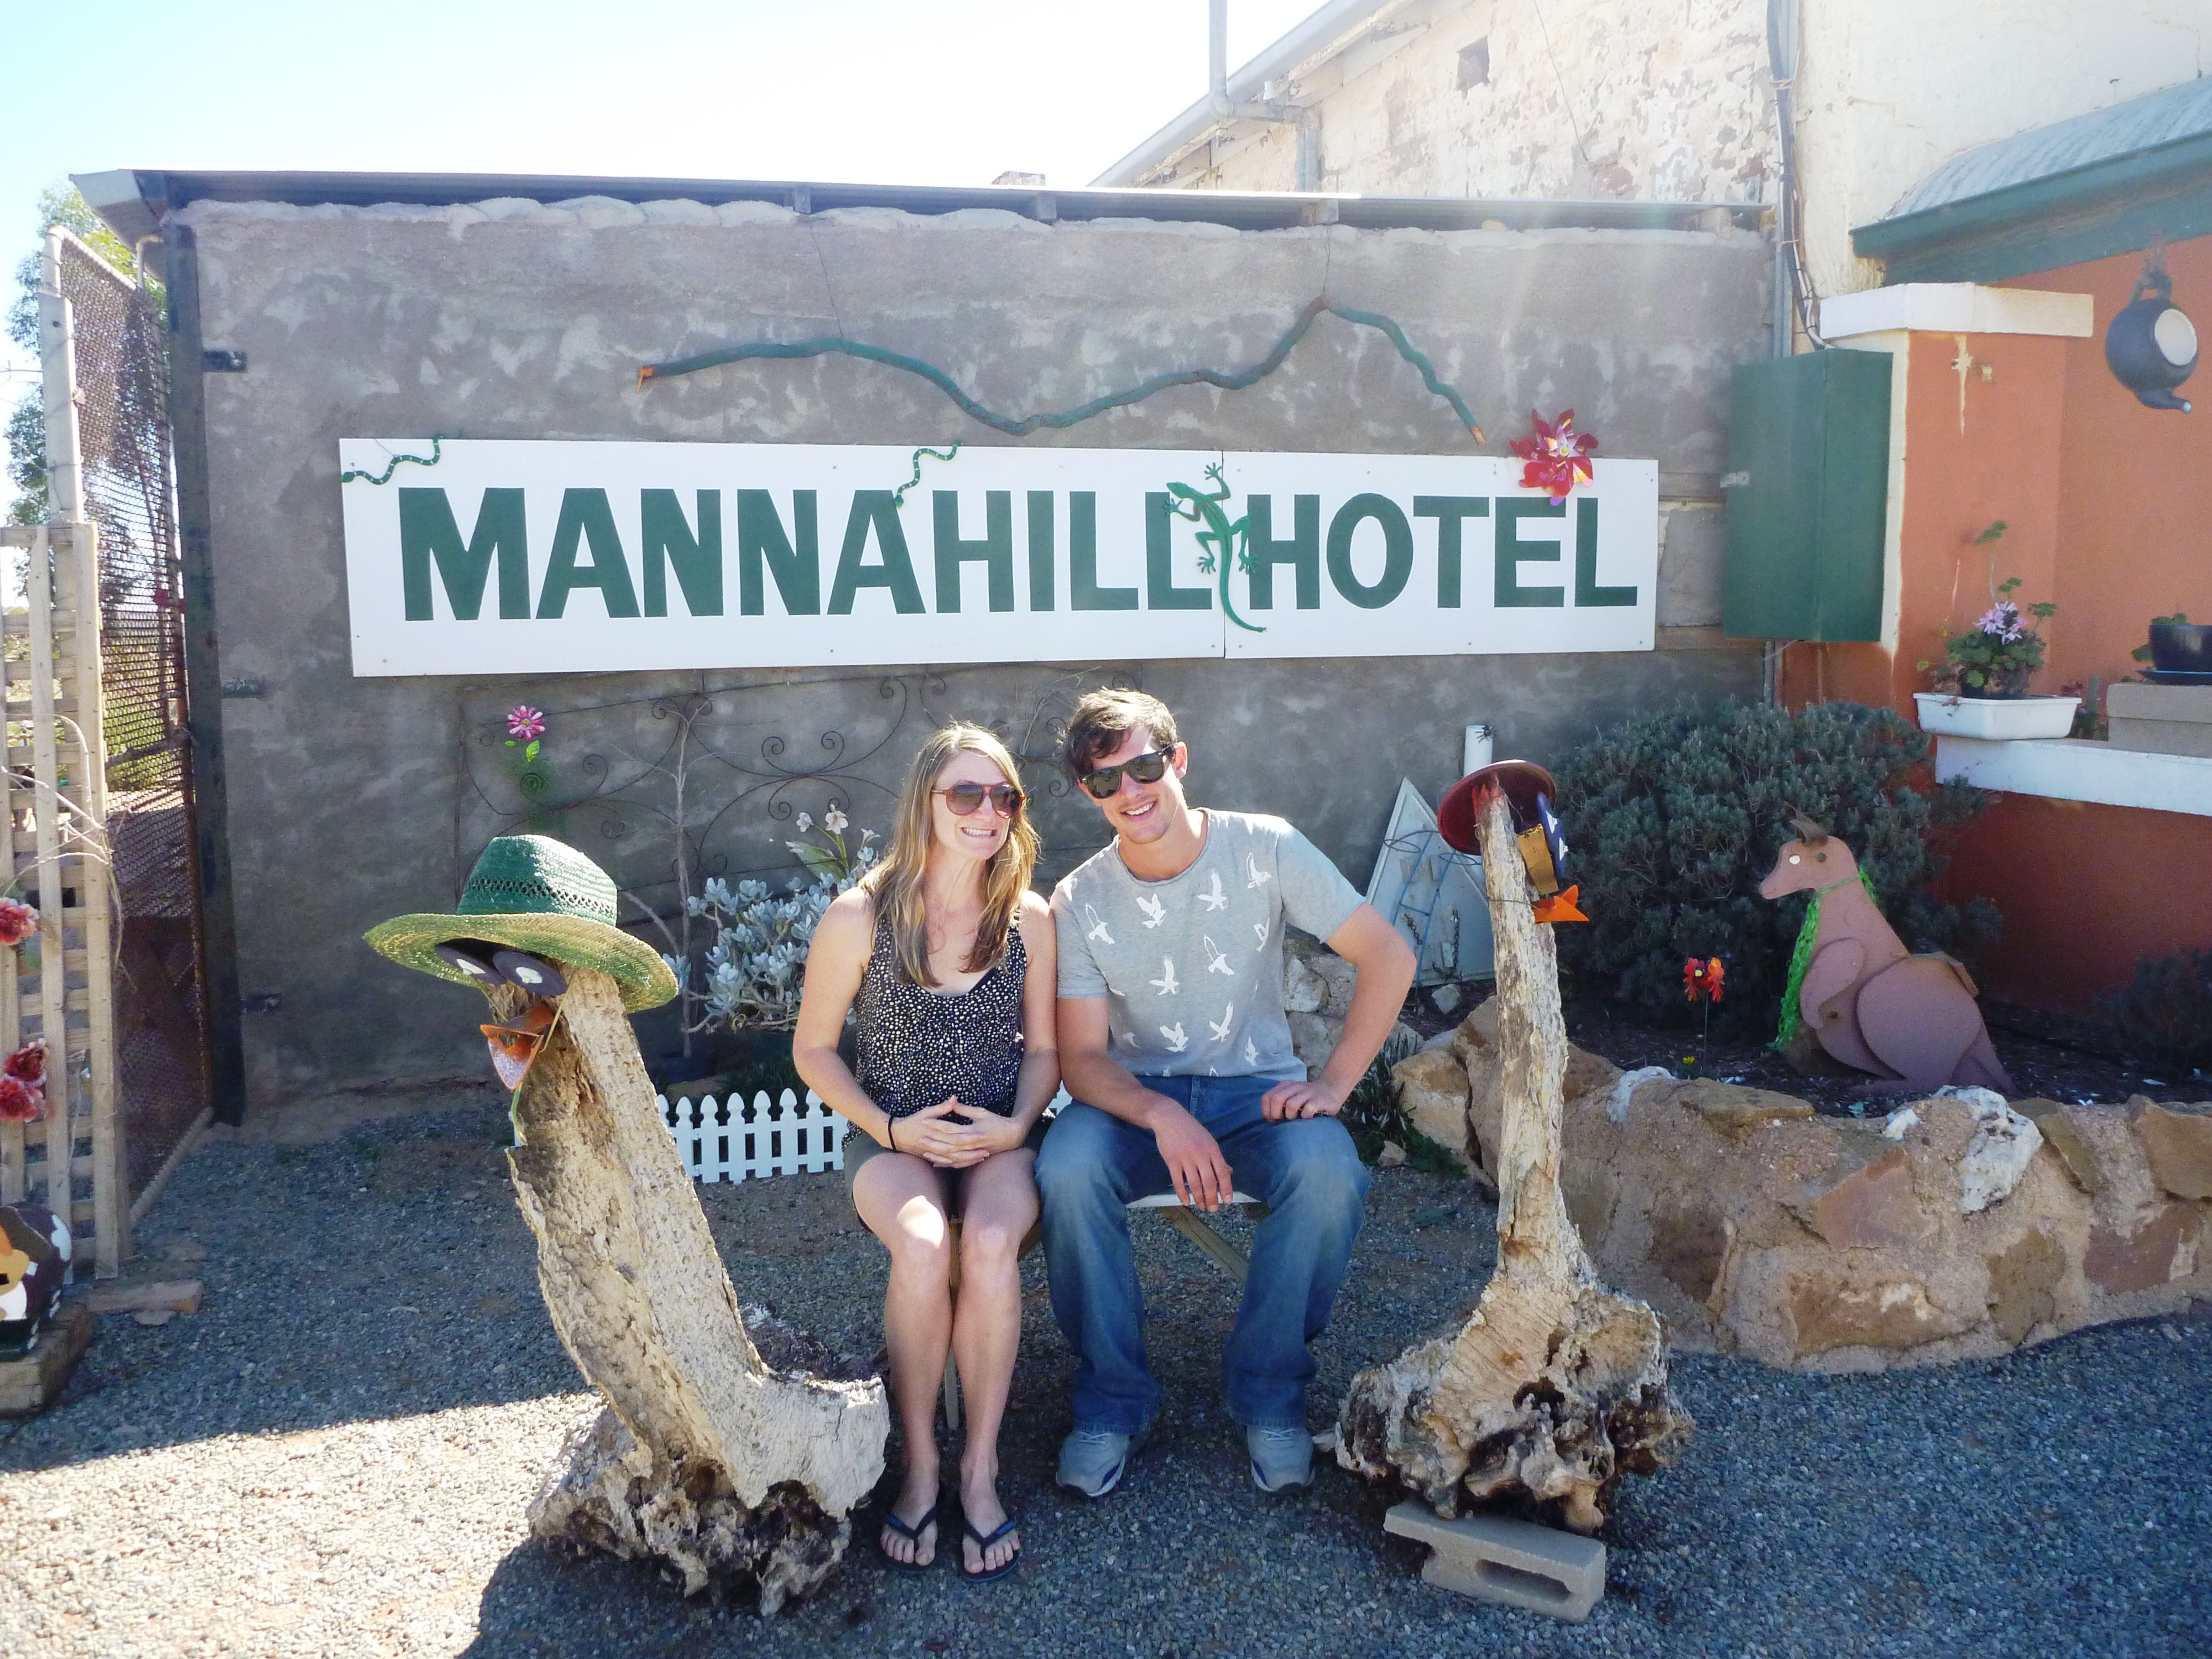 Michelle outside Manna Hotel - Road Trip Tales